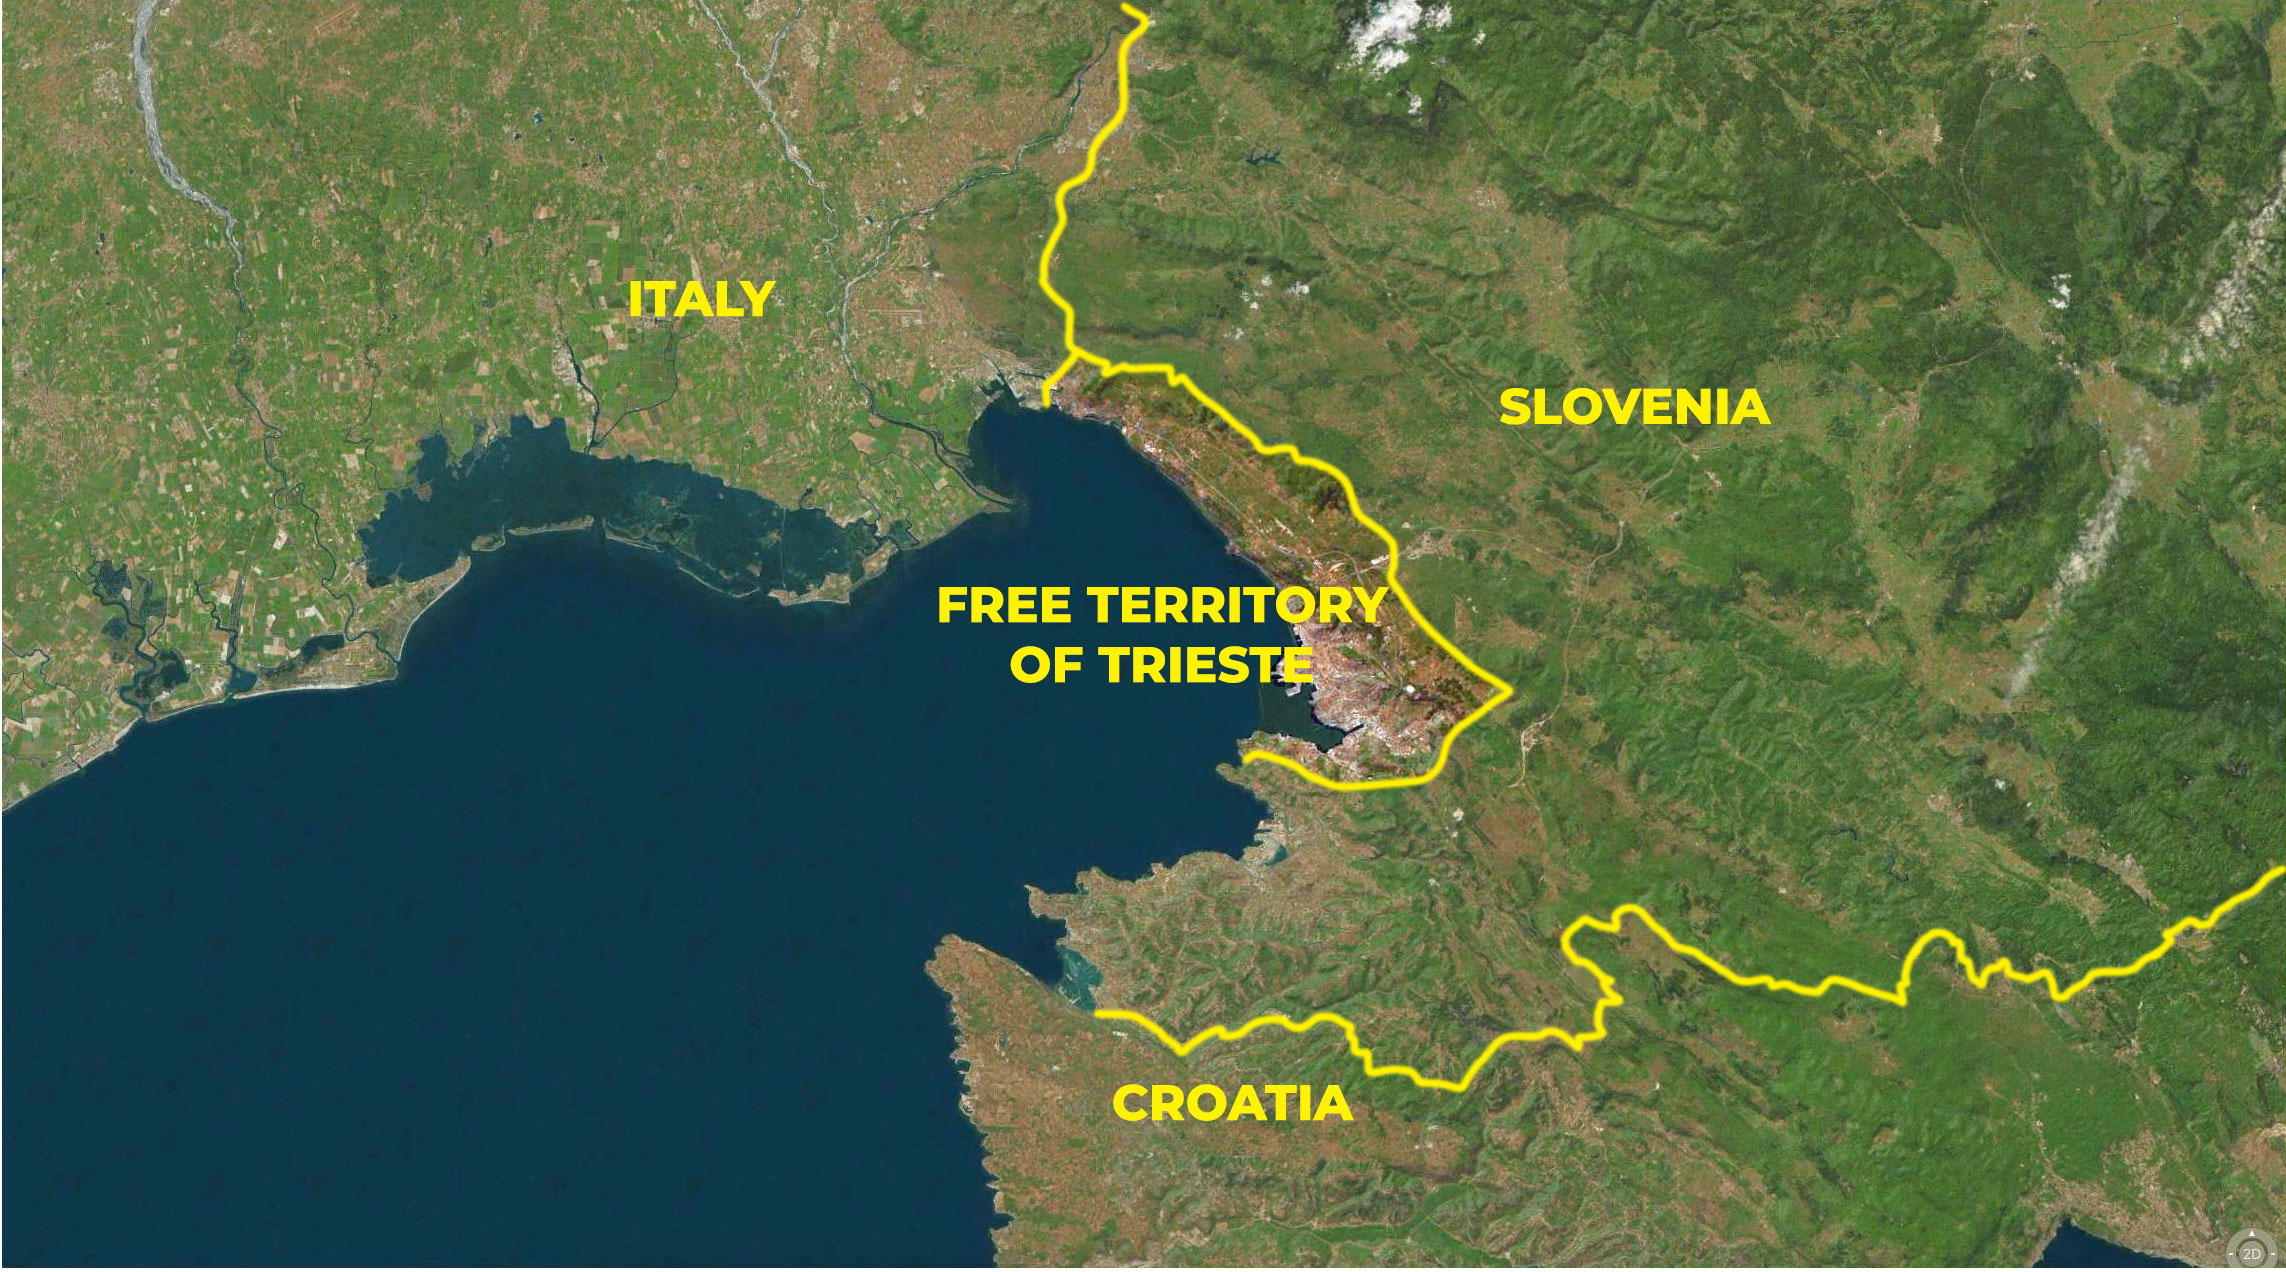 The present-day Free Territory of Trieste (since 1992).